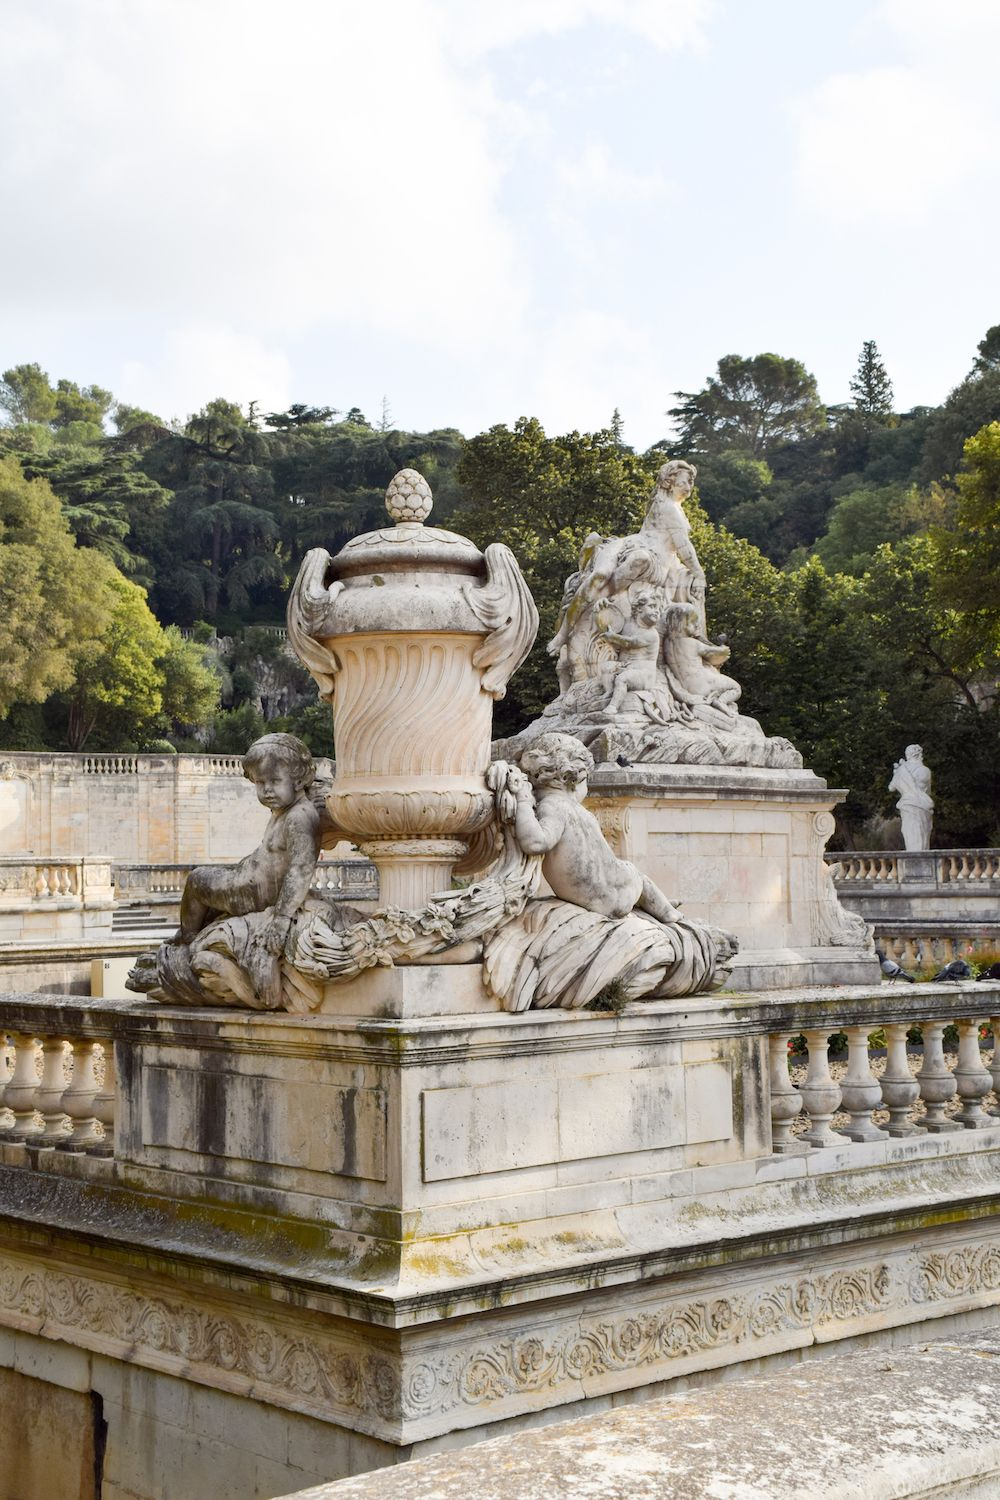 5 Spots To Catch A Glimpse Of The Ancient Roman Empire In Nimes